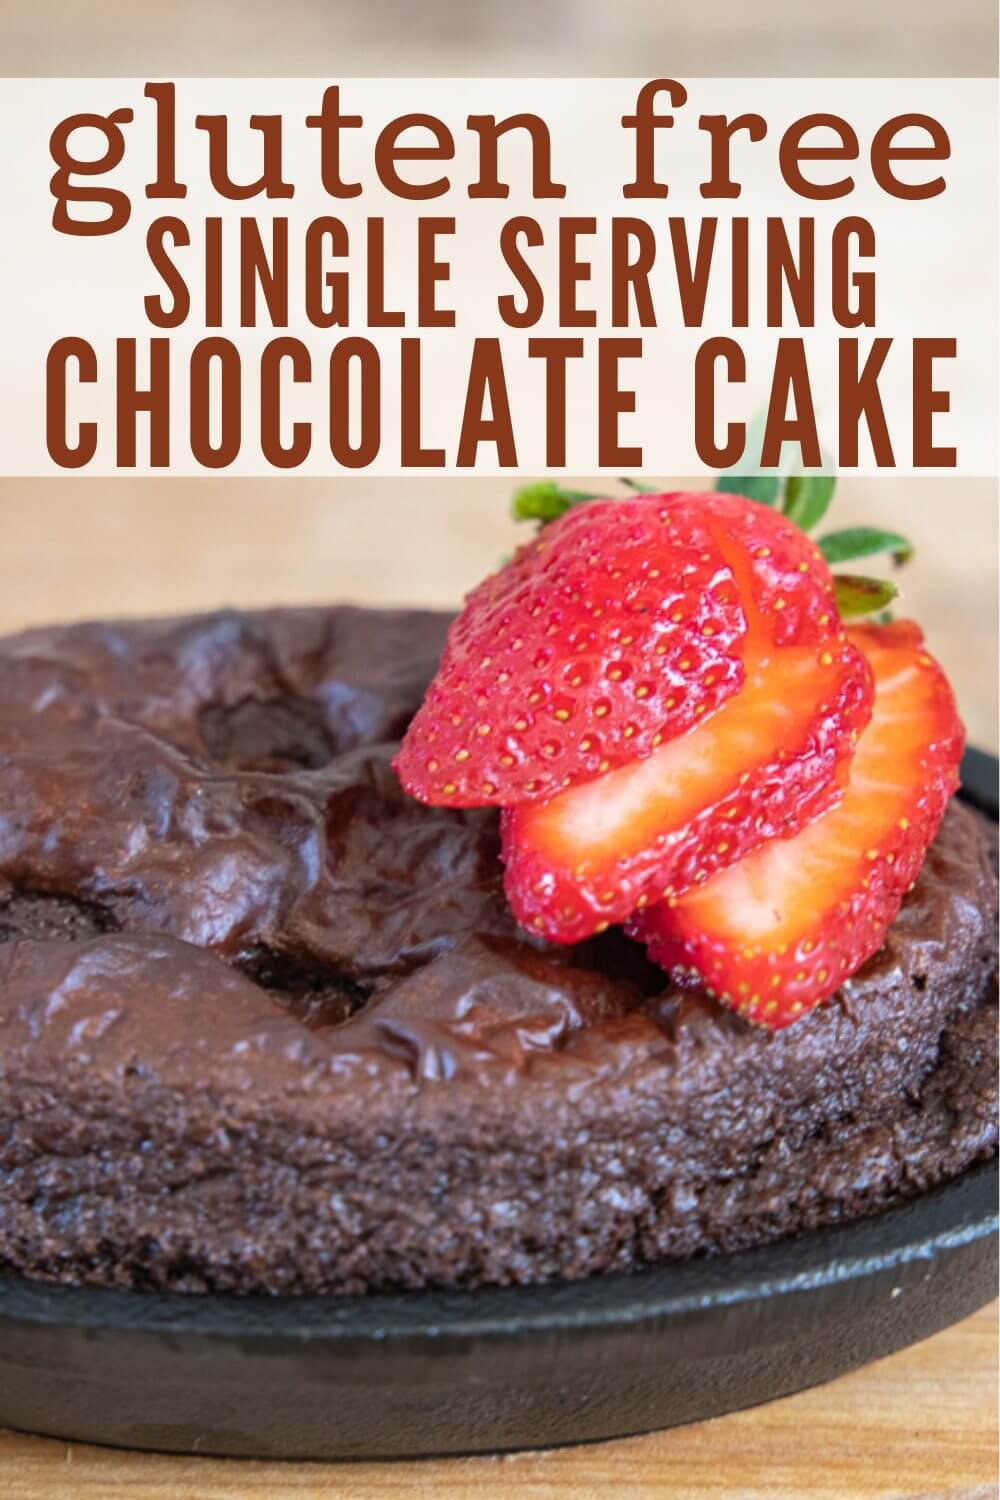 Amazing gluten free chocolate cake made with simple kitchen ingredients. These also uses individual mini cakes perfect for entertaining or to make for someone that cant have traditional cake. This is an amazing option!